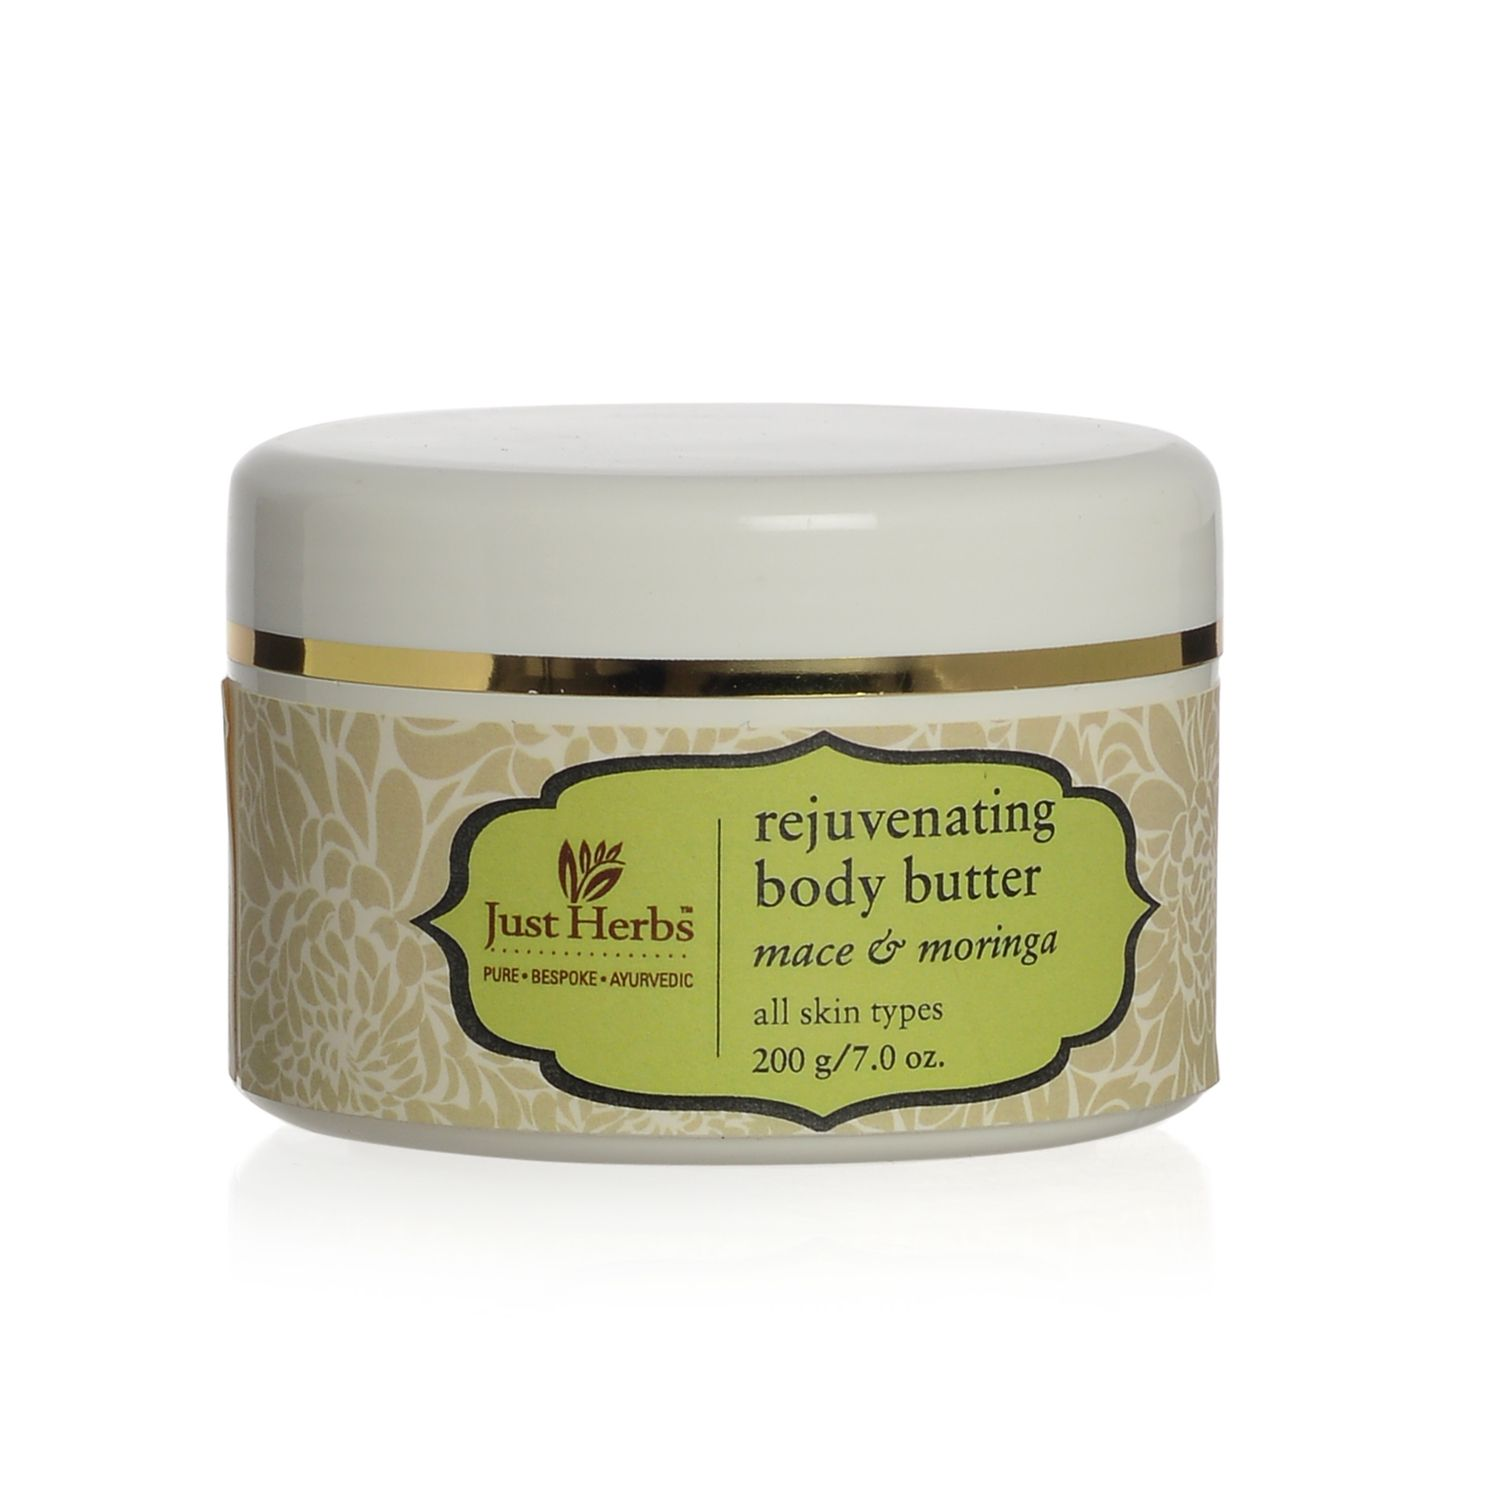 just herbs rejuvenating body butter mace and moringa just herbs featured brands beauty. Black Bedroom Furniture Sets. Home Design Ideas